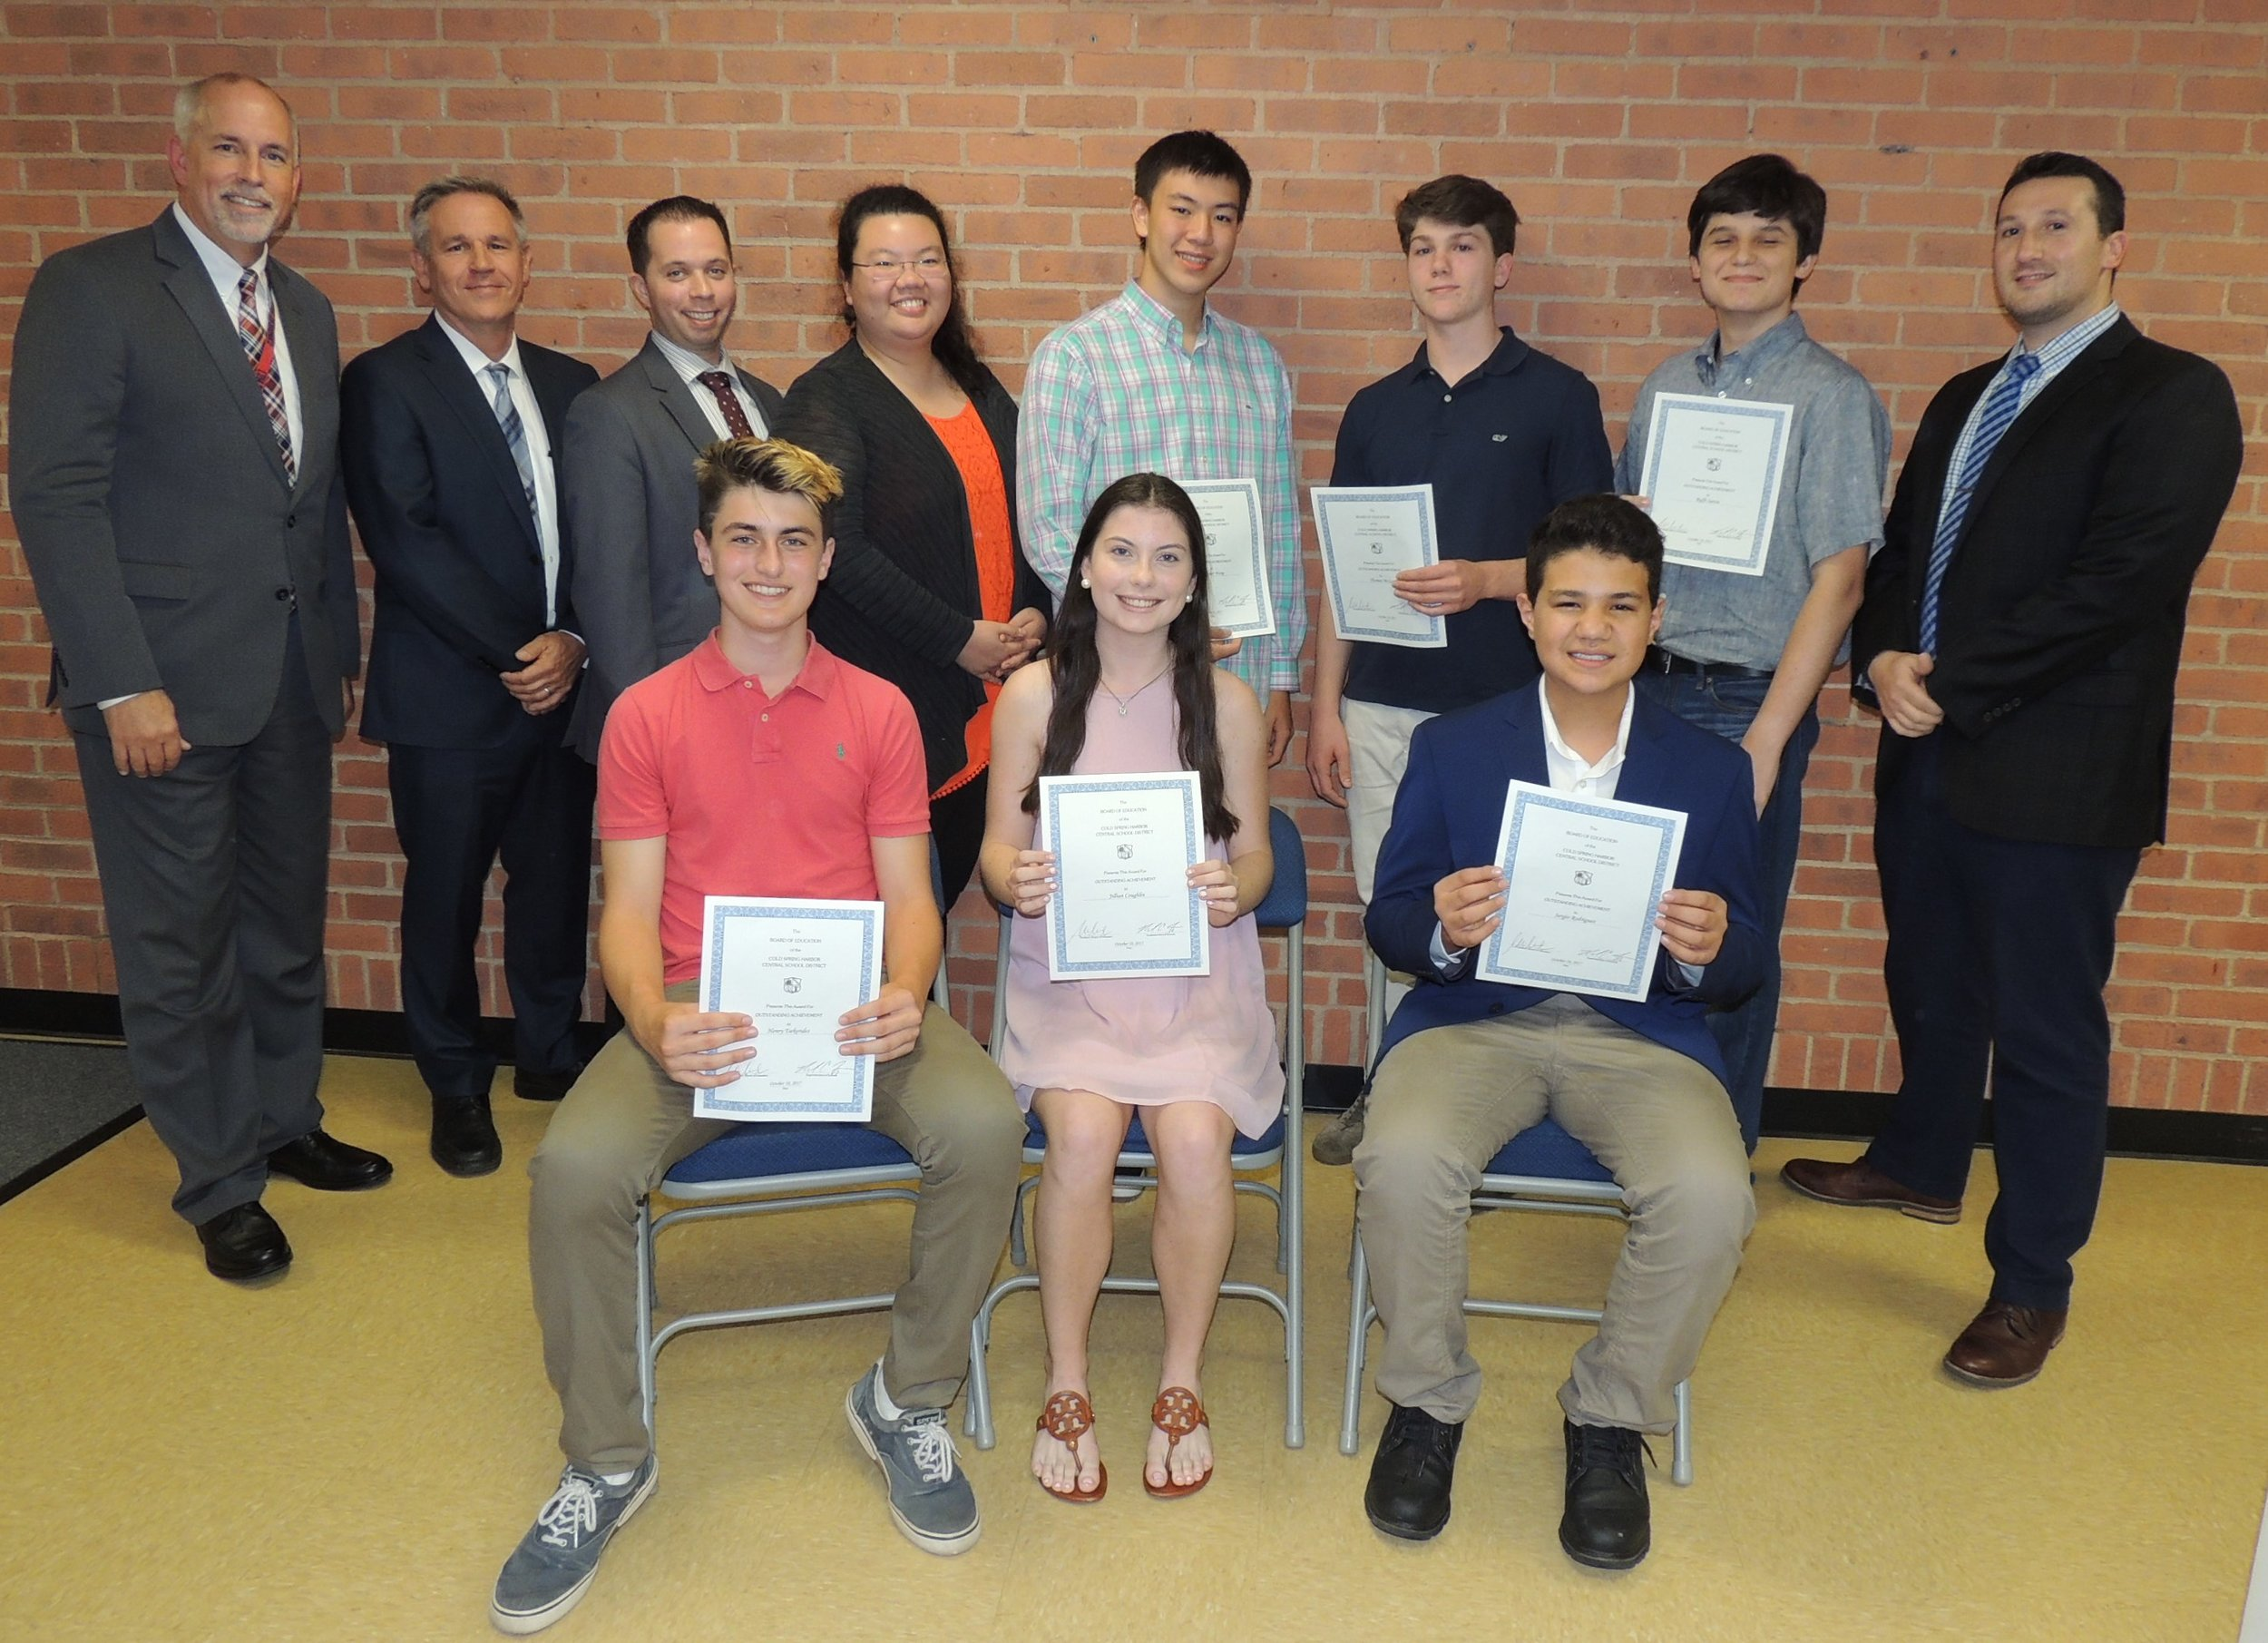 Several students within the Cold Spring Harbor School District received music honors in the All-State New York State School Music Association (NYSSMA) and the American Choral Directors Association (ACDA) All National Choral Ensembles.   Photo Courtesy of Cold Spring Harbor School District